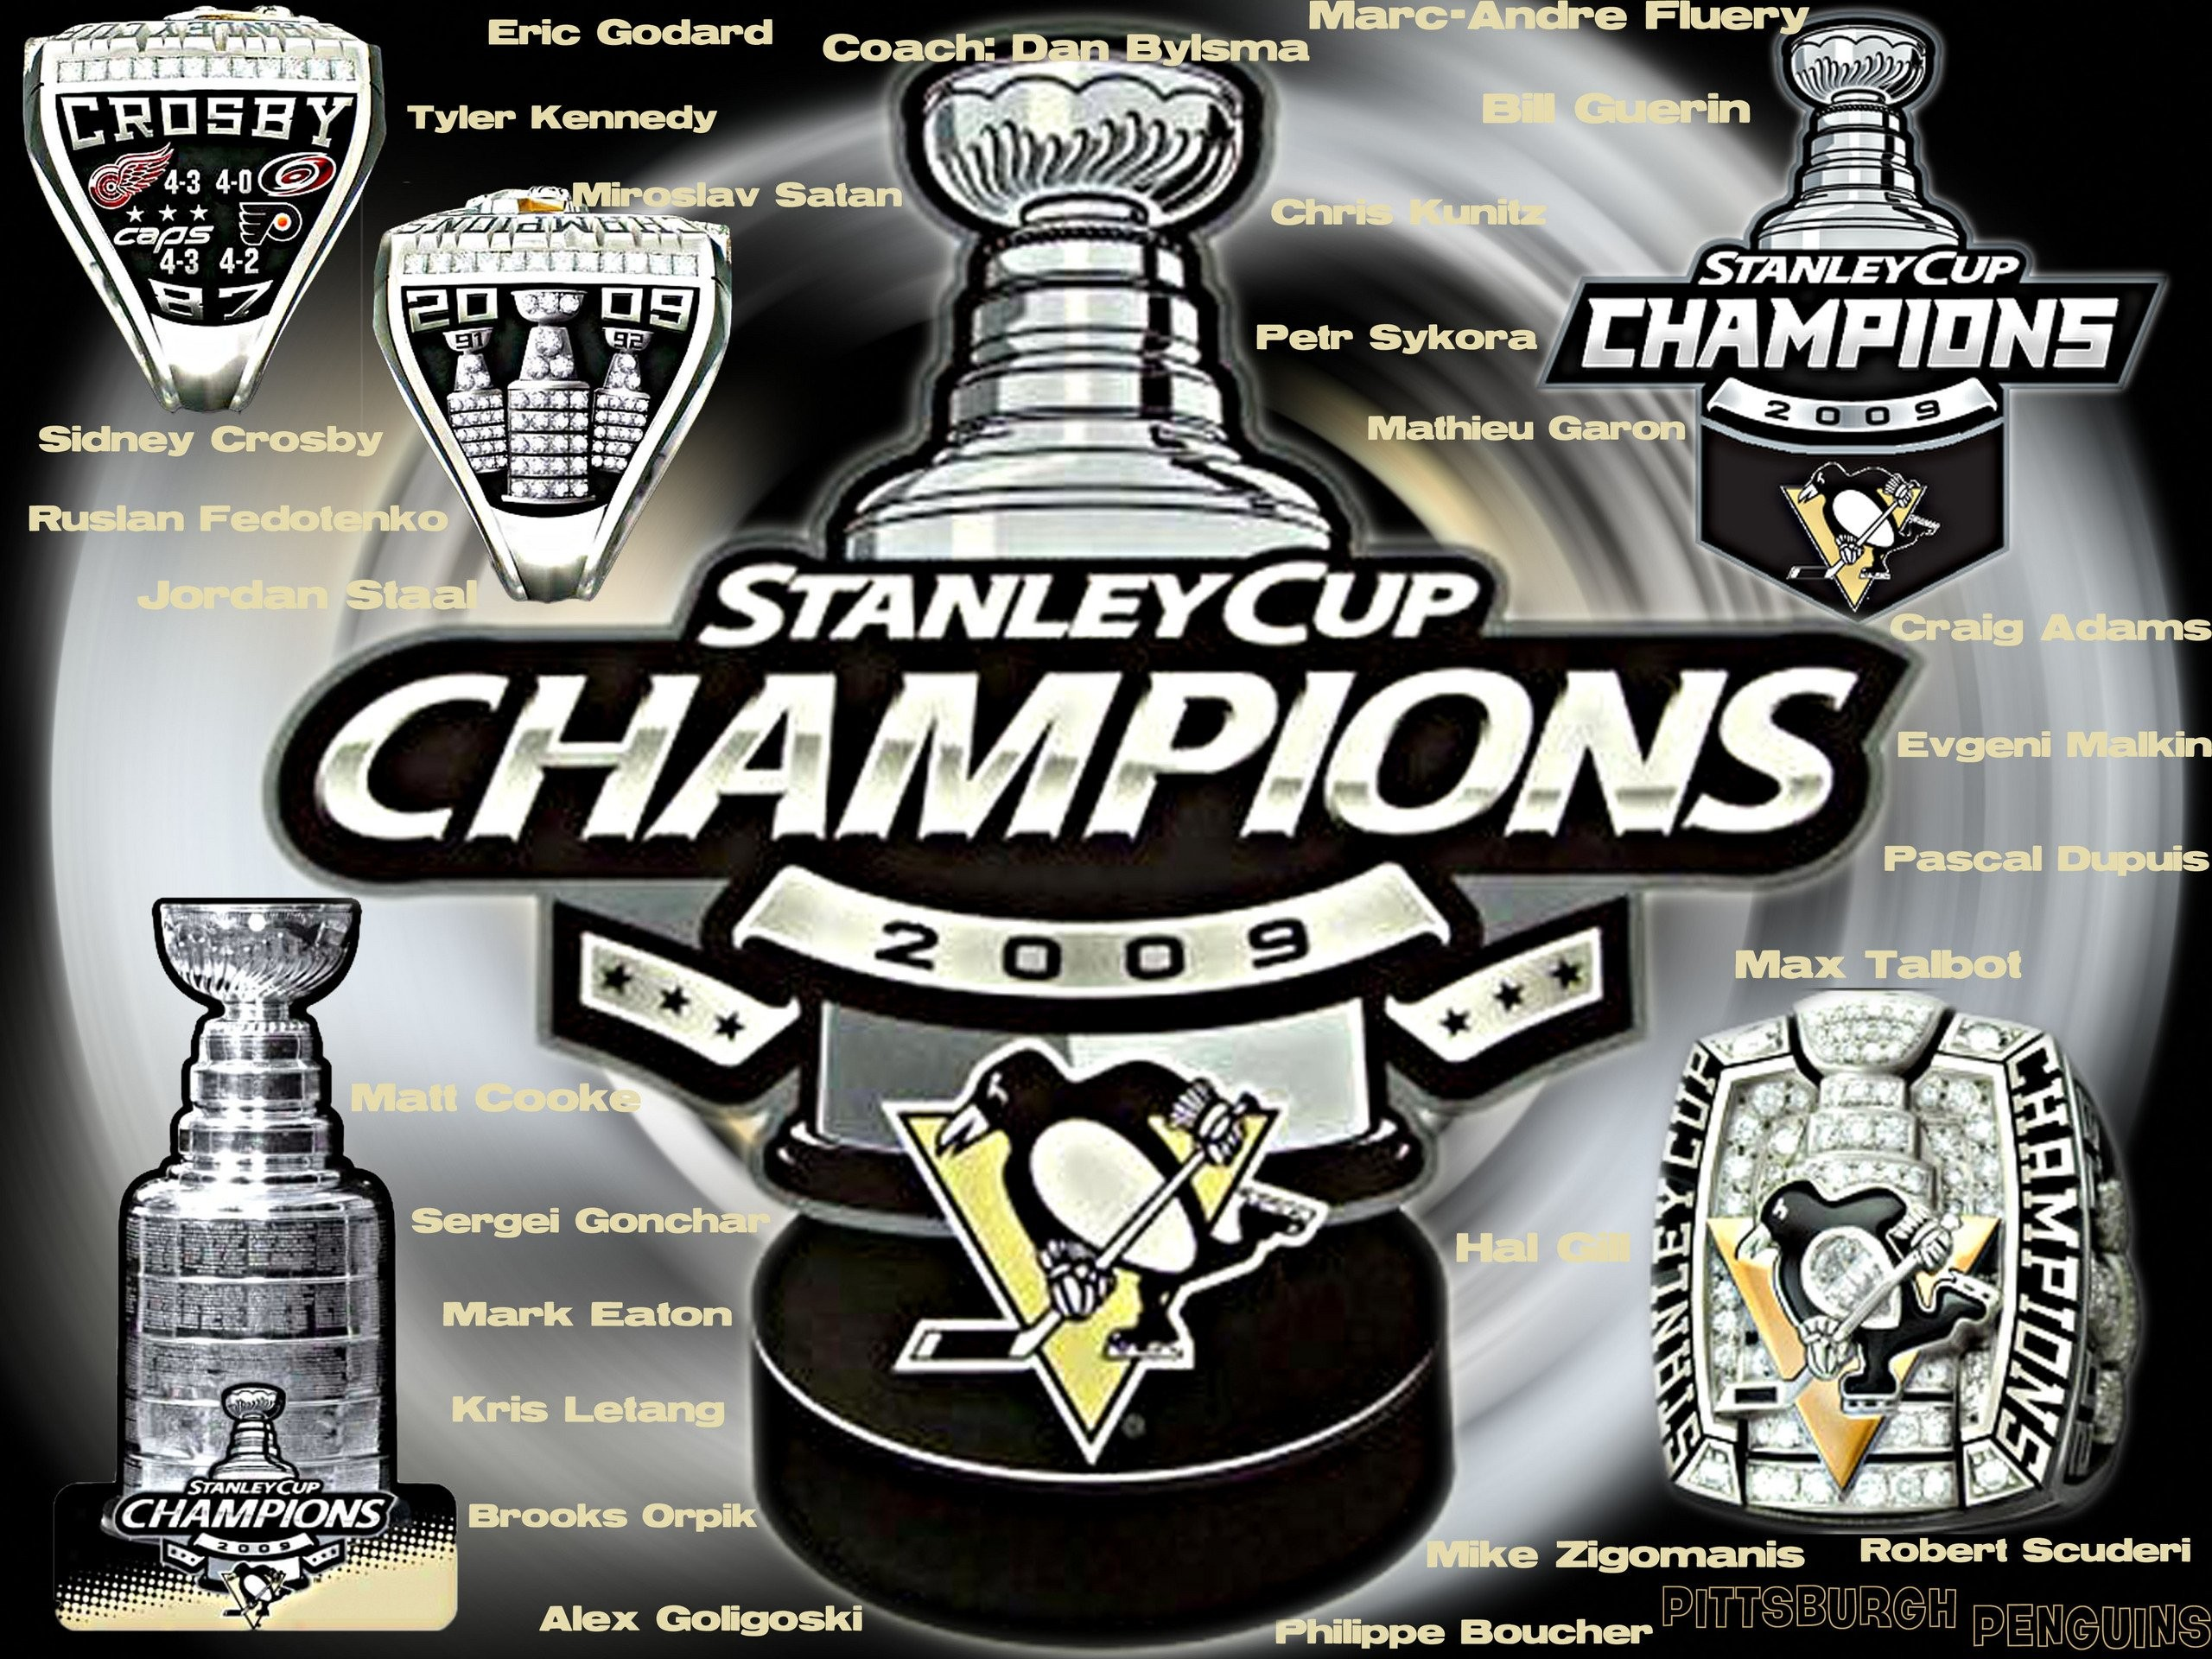 2560x1920 PITTSBURGH PENGUINS nhl hockey (81) wallpaper |  | 359610 |  WallpaperUP